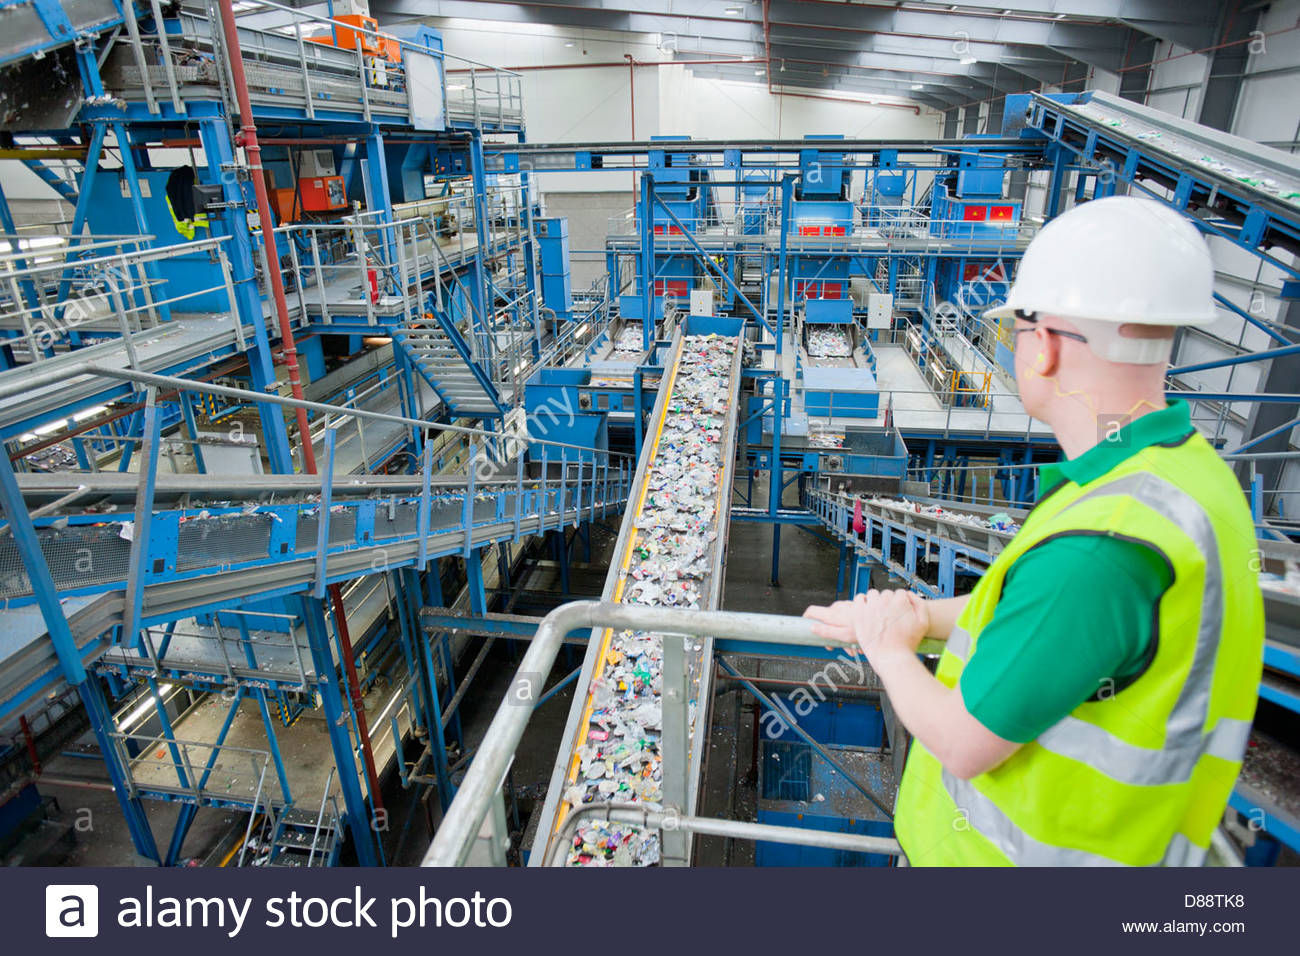 Worker watching plastic on conveyor belt in recycling plant - Stock Image